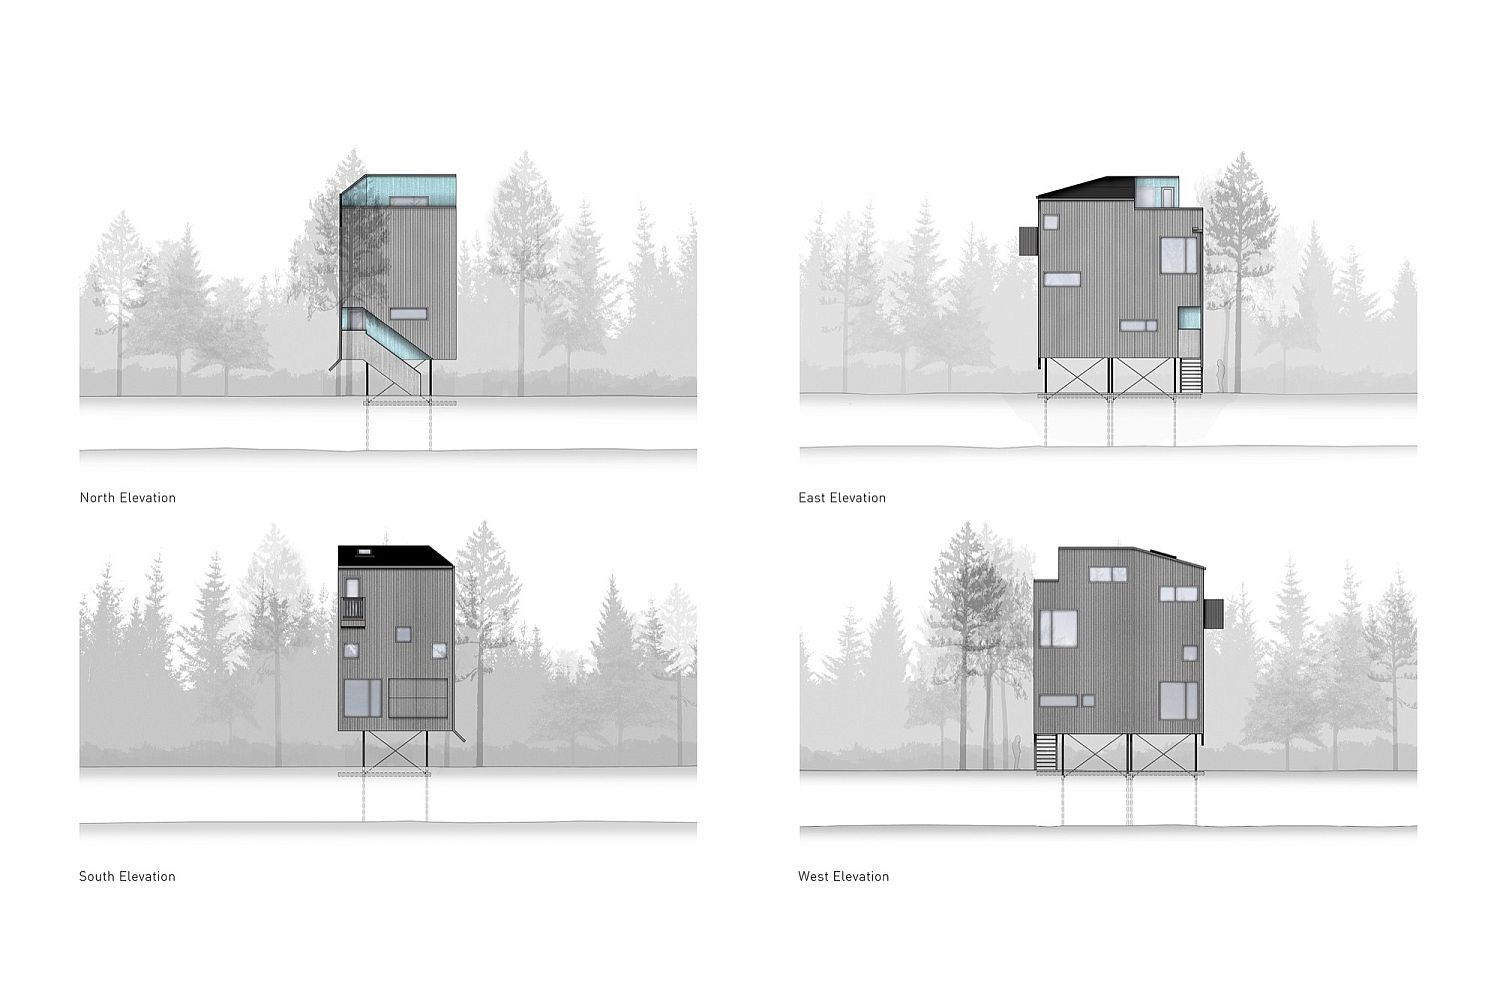 Different elevations of the Pole House in Canda